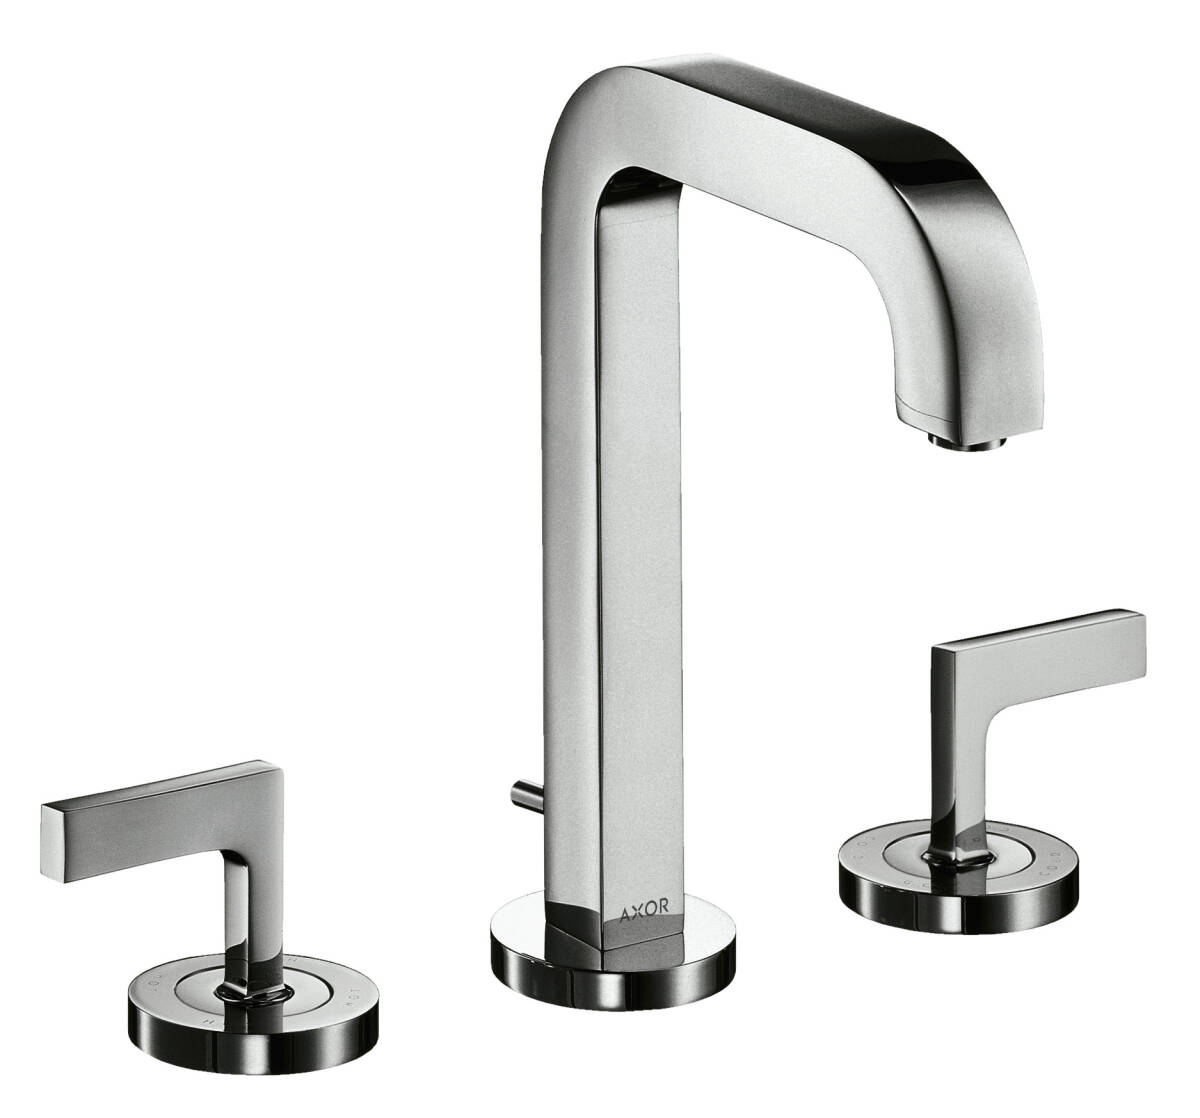 3-hole basin mixer 170 with spout 140 mm, lever handles, escutcheons and pop-up waste set, Polished Gold Optic, 39135990